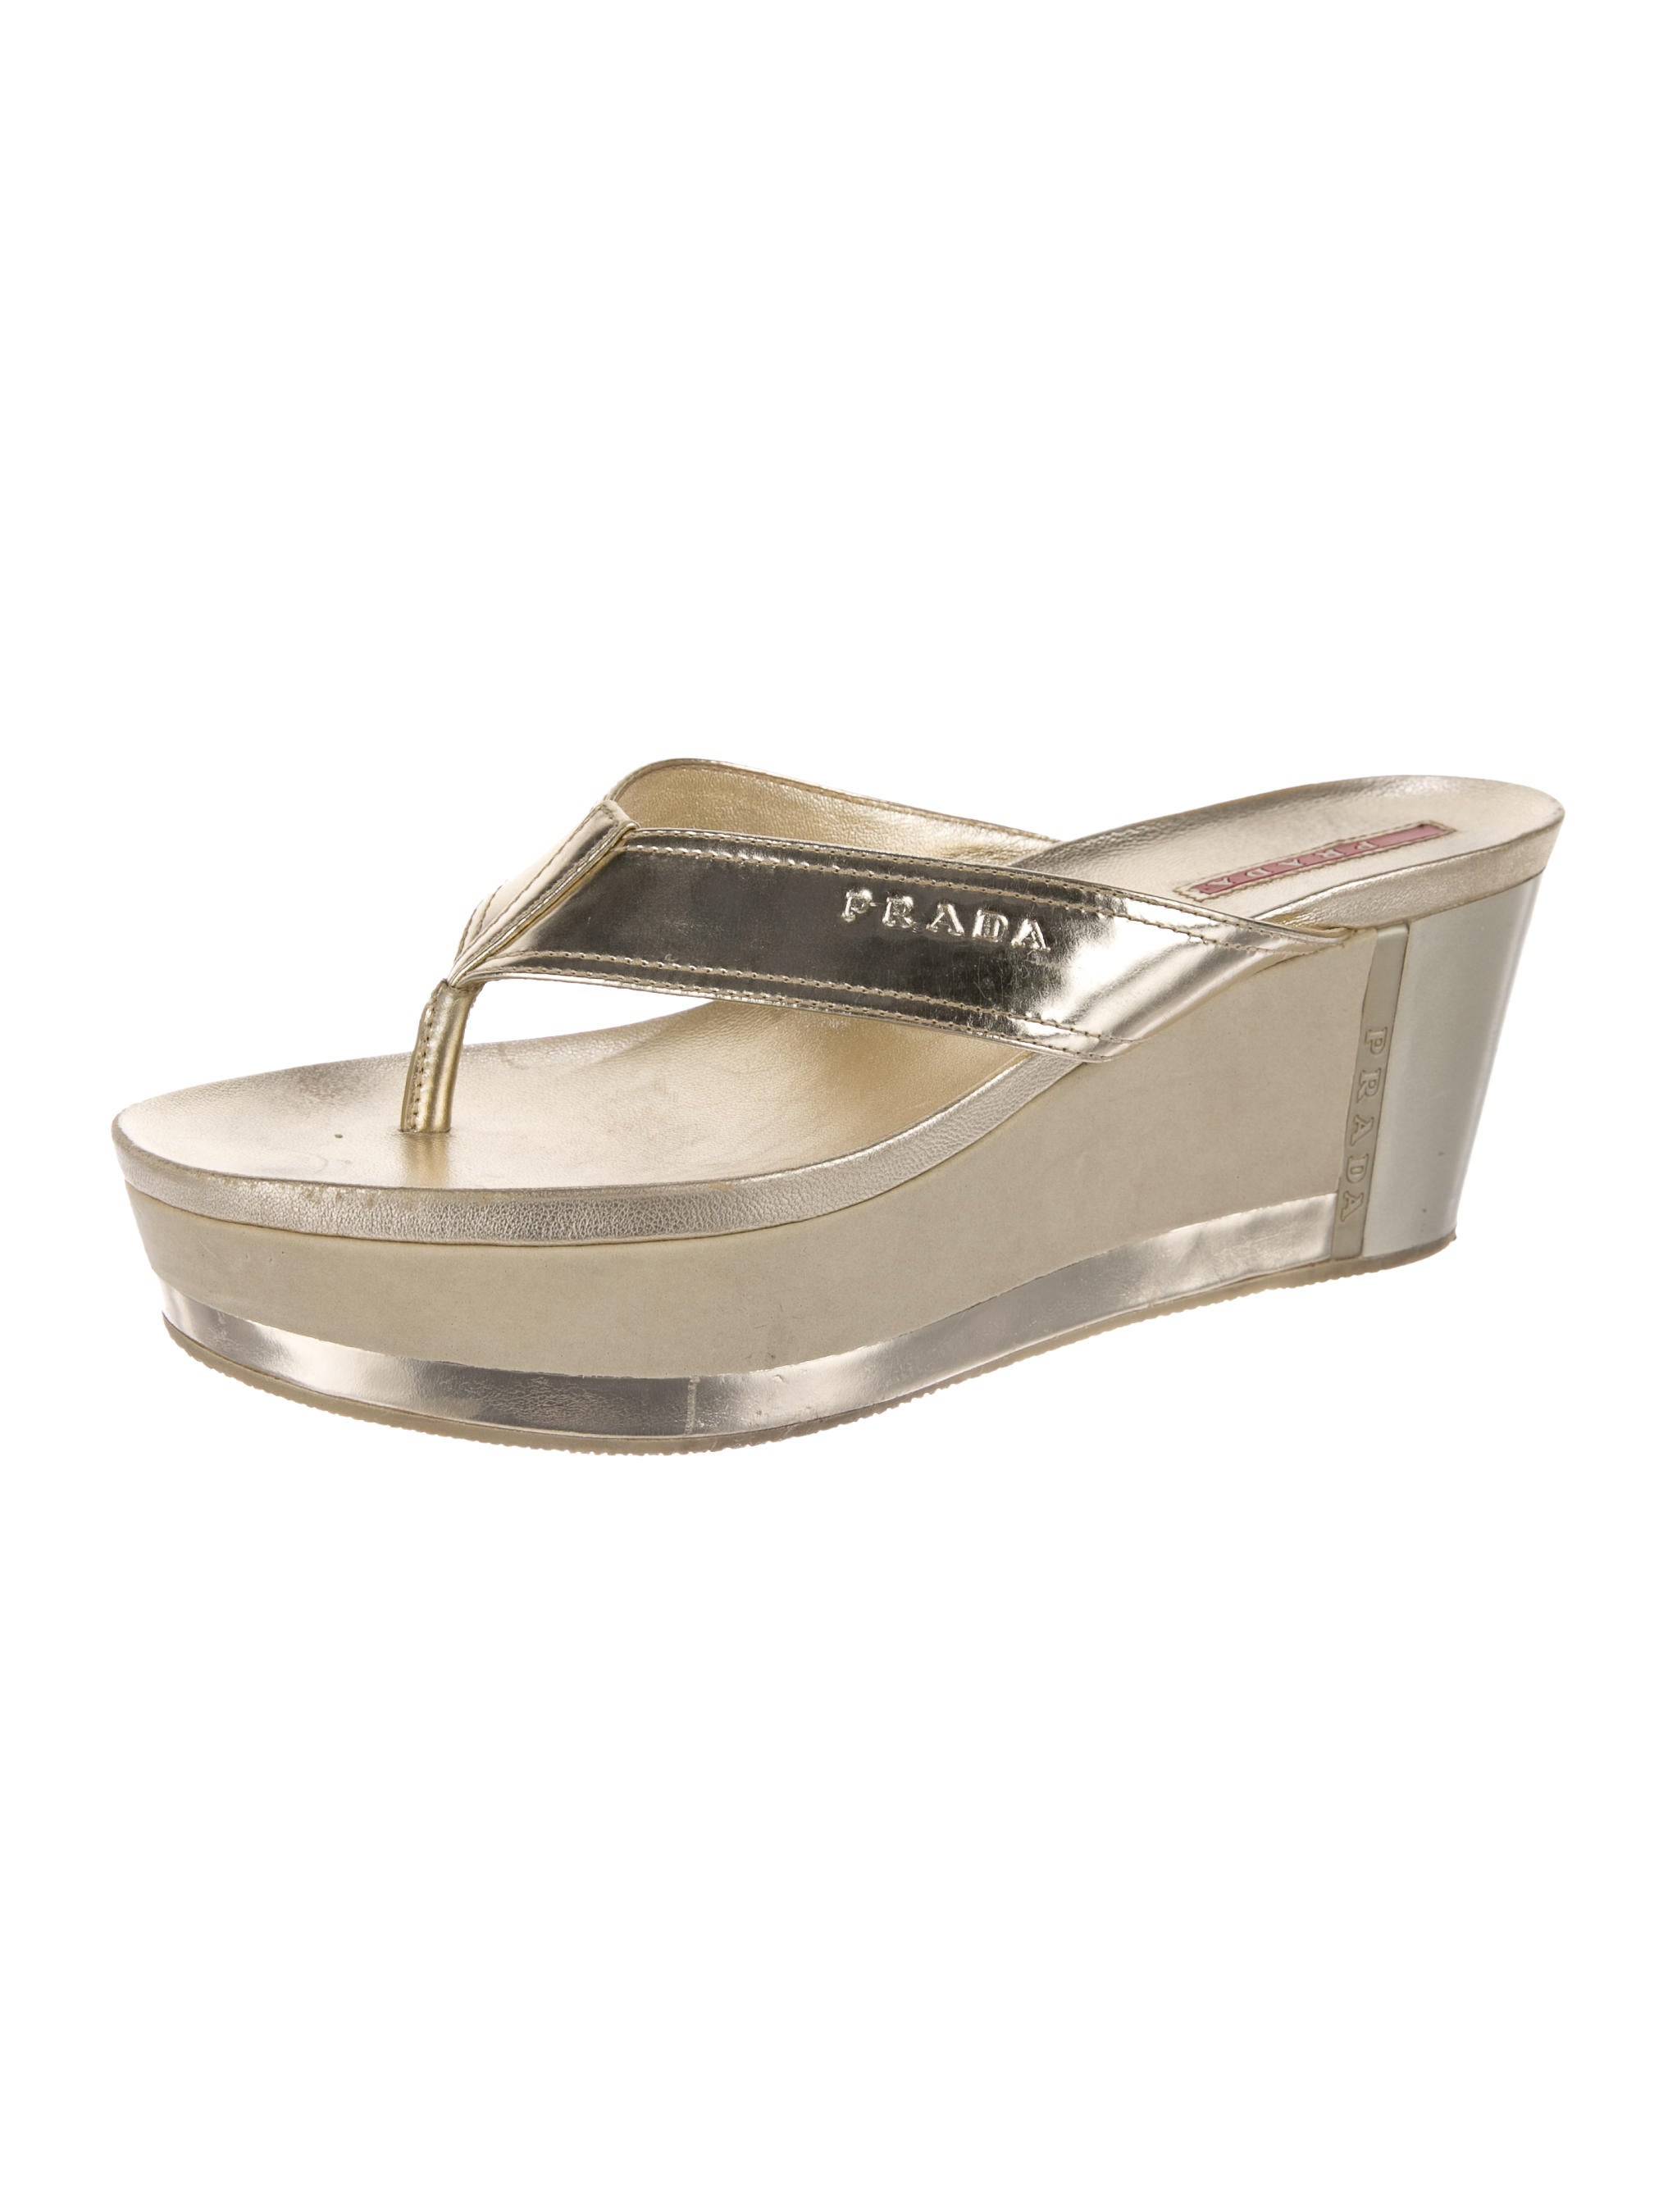 prada sport metallic platform sandals shoes wpr43249